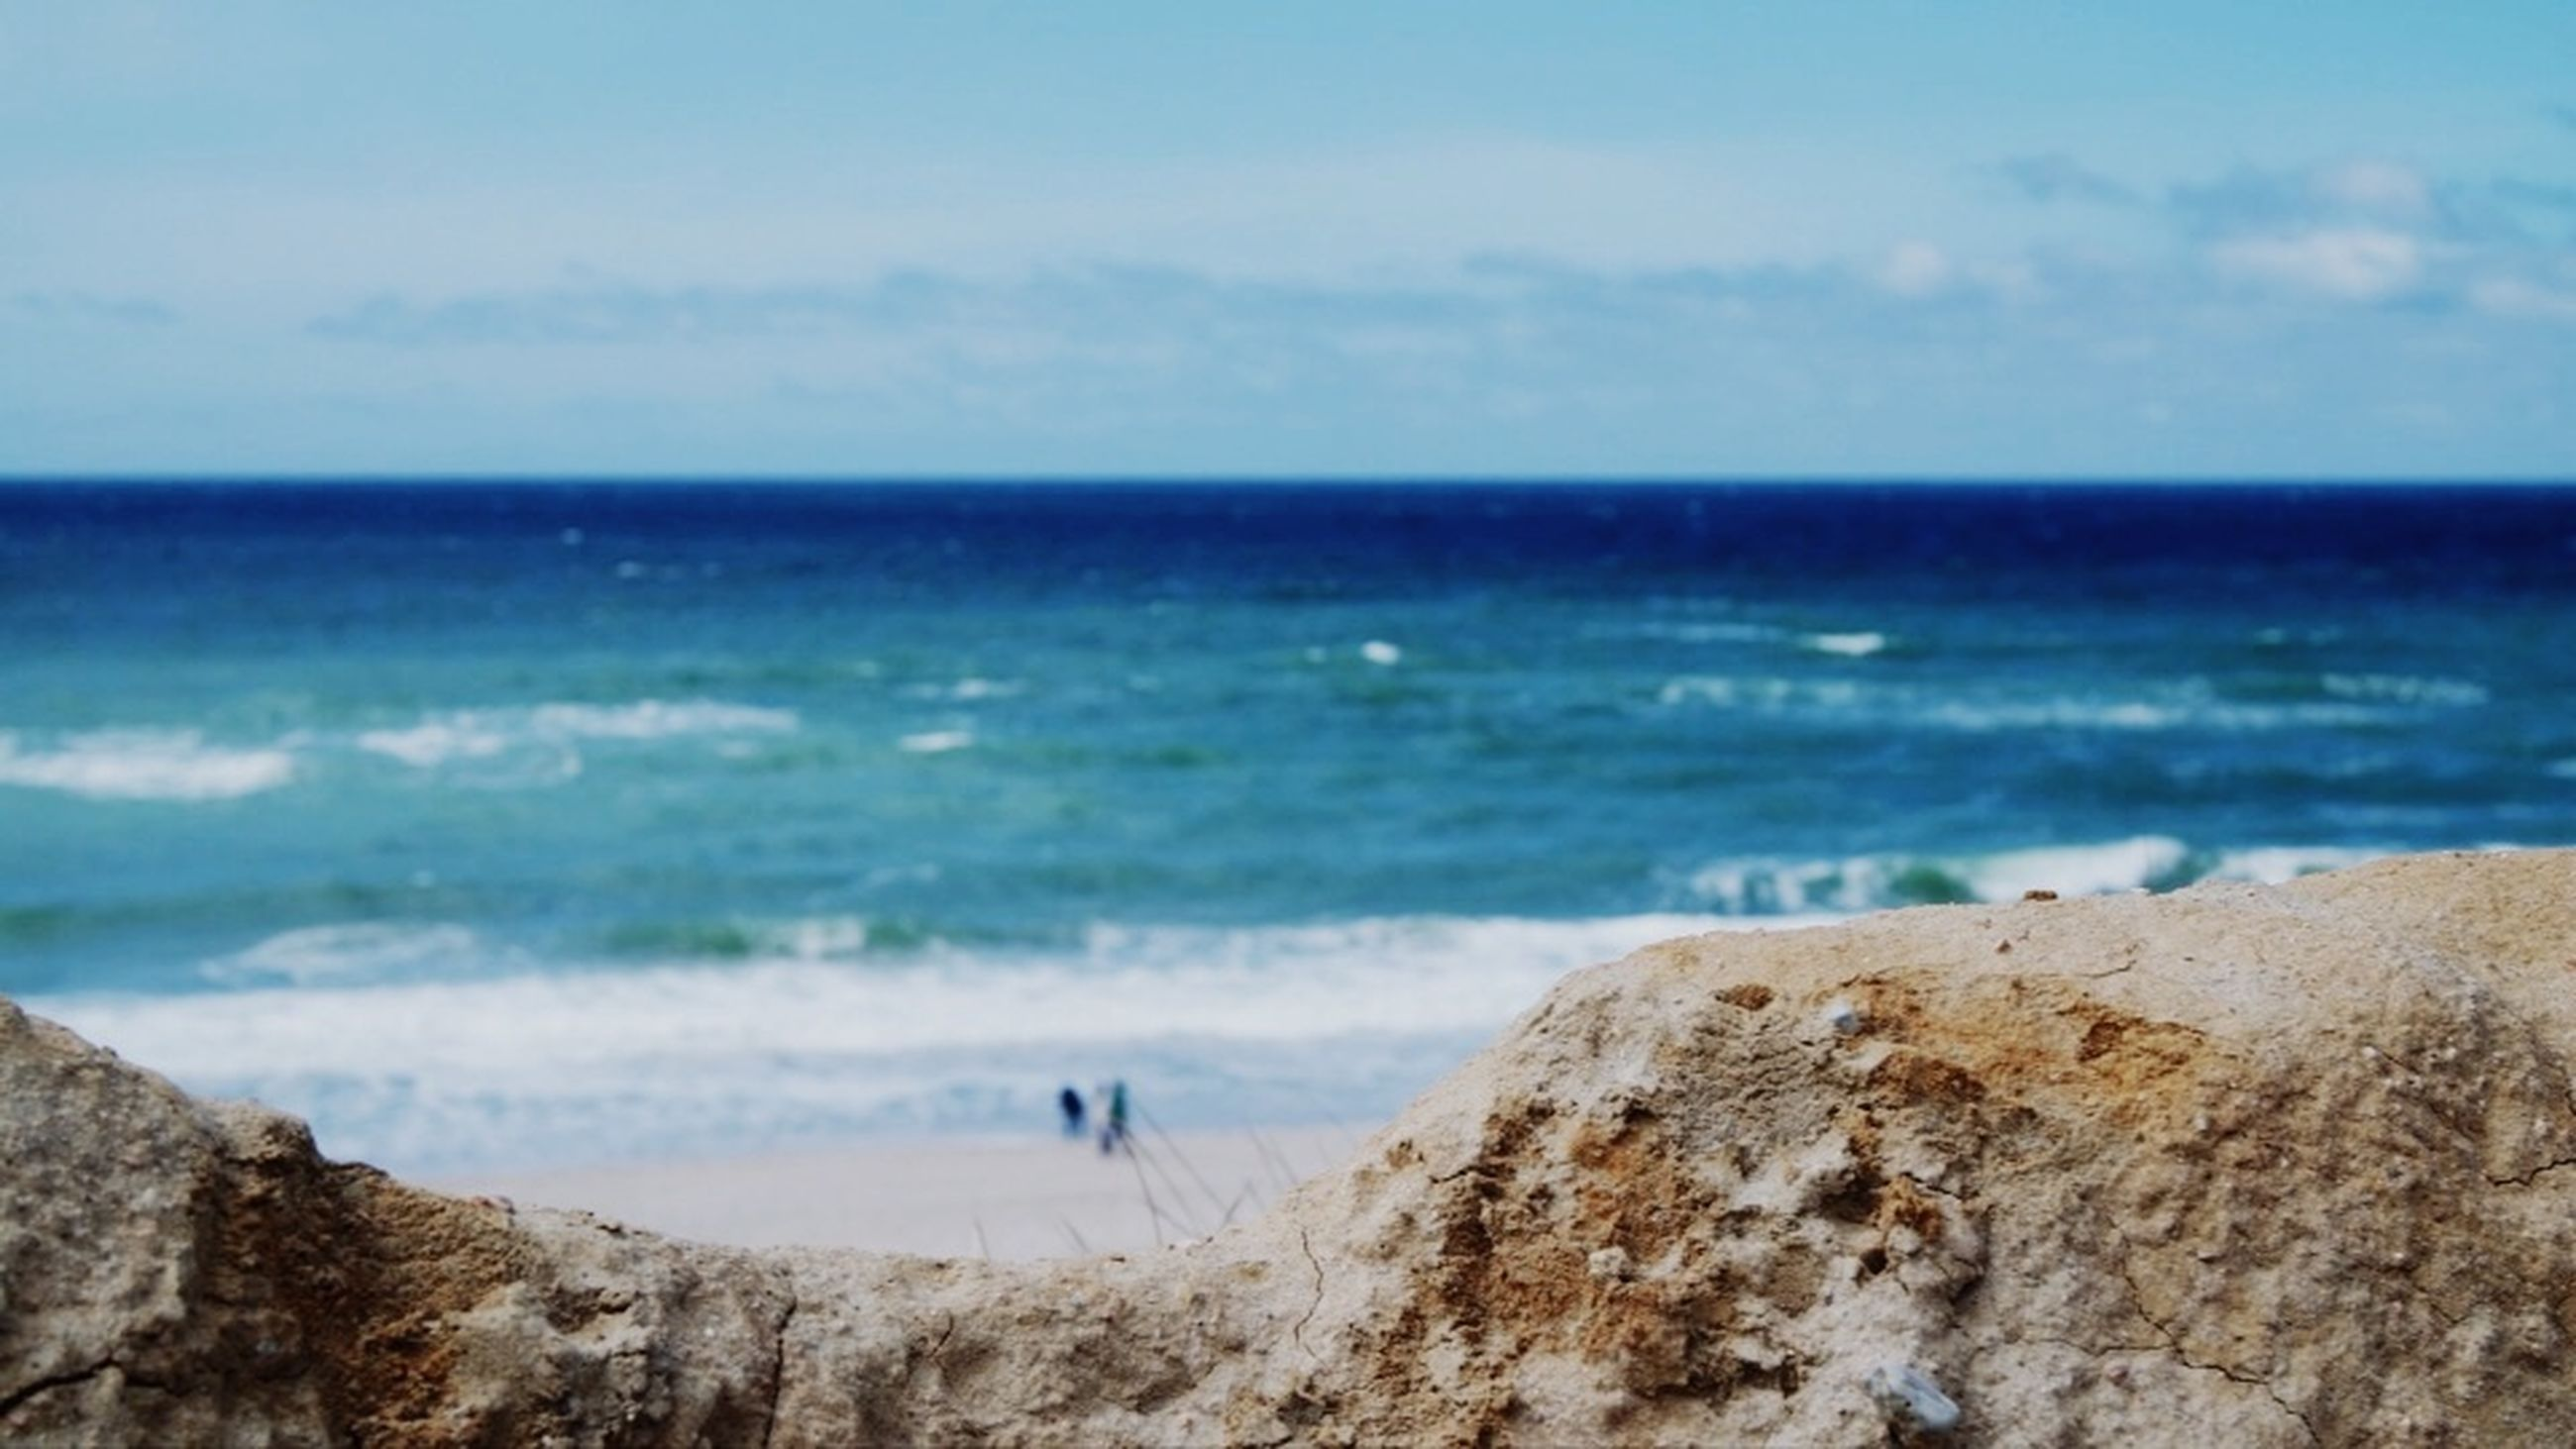 sea, water, beach, land, horizon, horizon over water, beauty in nature, scenics - nature, motion, sky, wave, nature, tranquil scene, tranquility, rock, sand, aquatic sport, day, rock - object, no people, outdoors